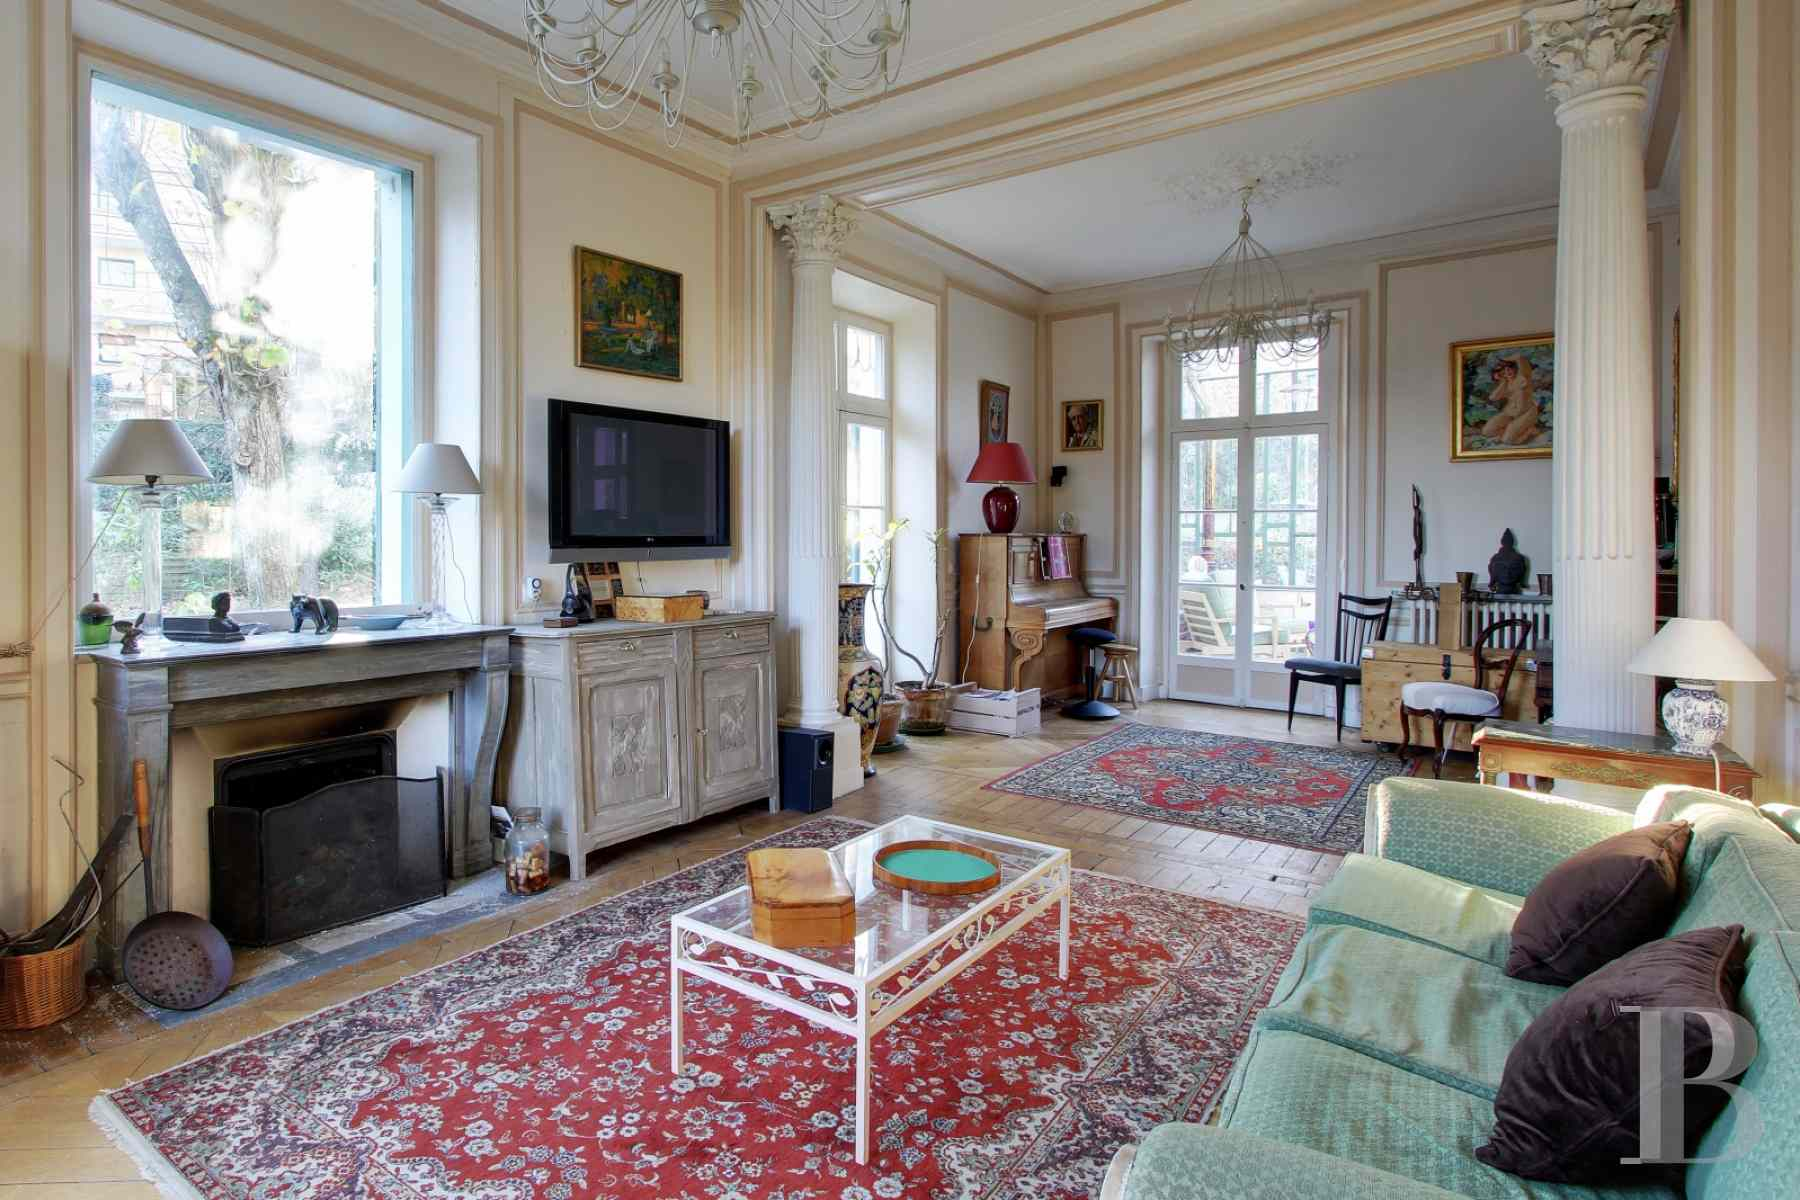 property for sale France paris ville d - 7 zoom